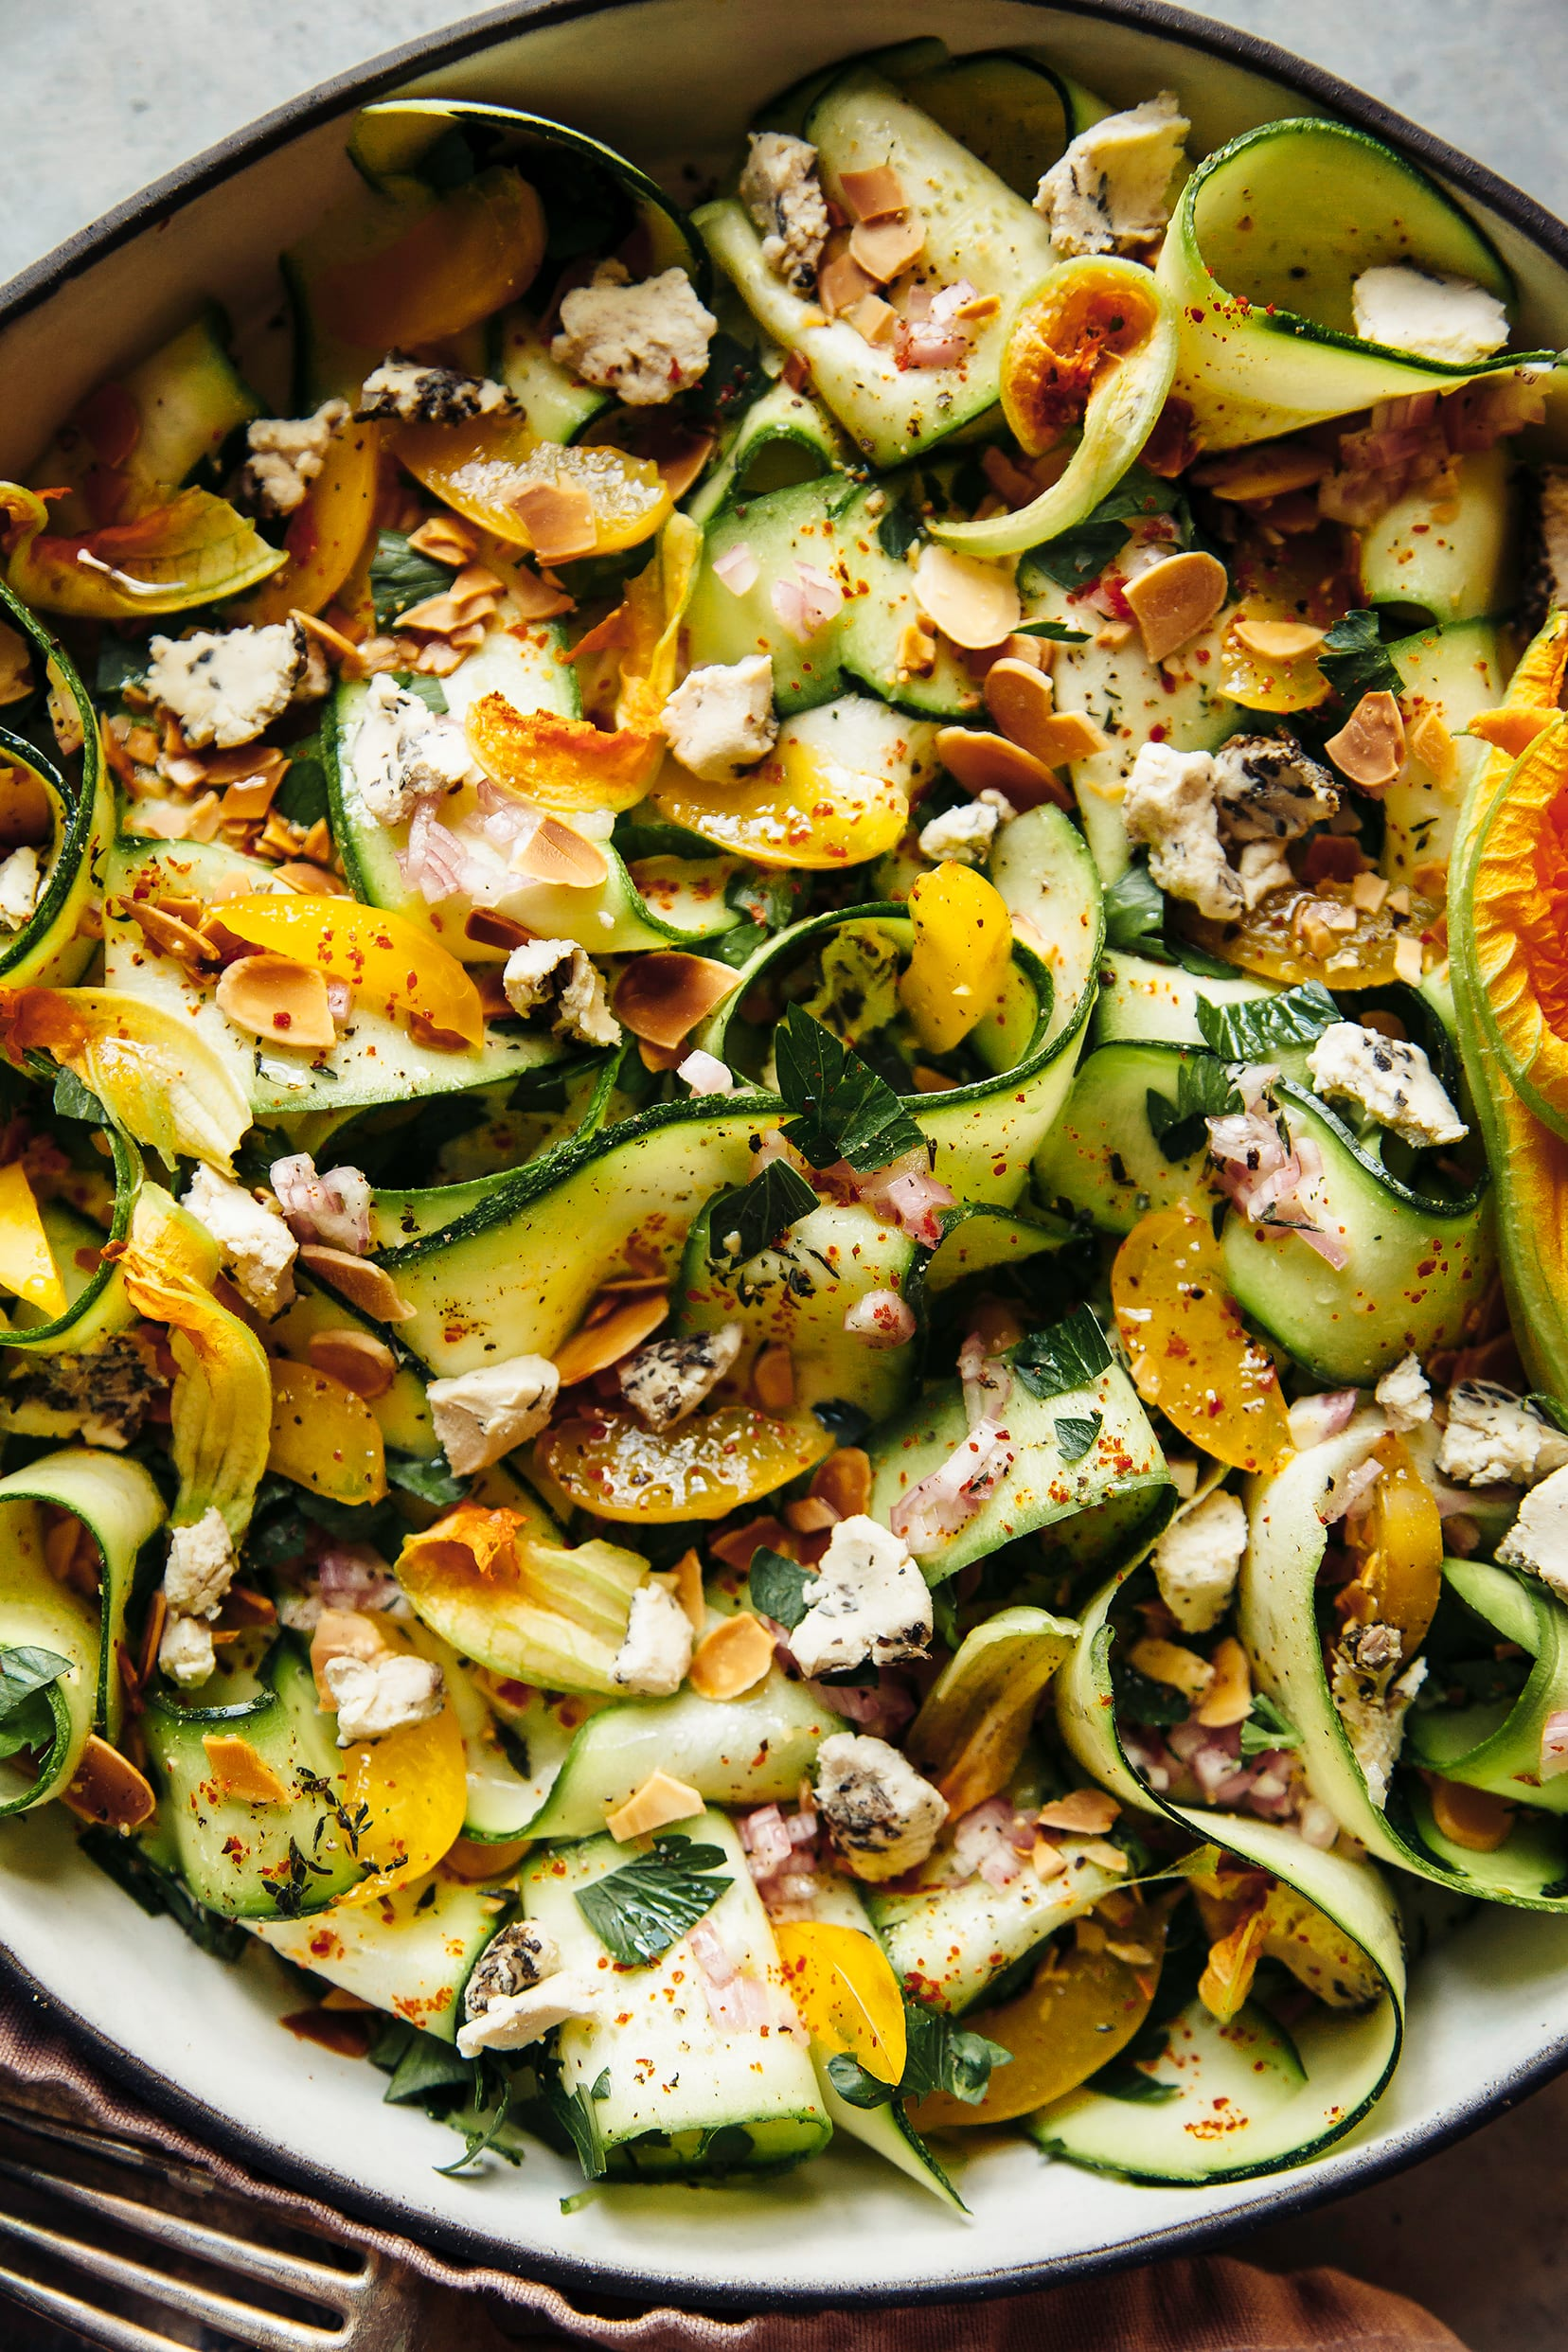 Shaved zucchini salad with plums, herbs and almonds.